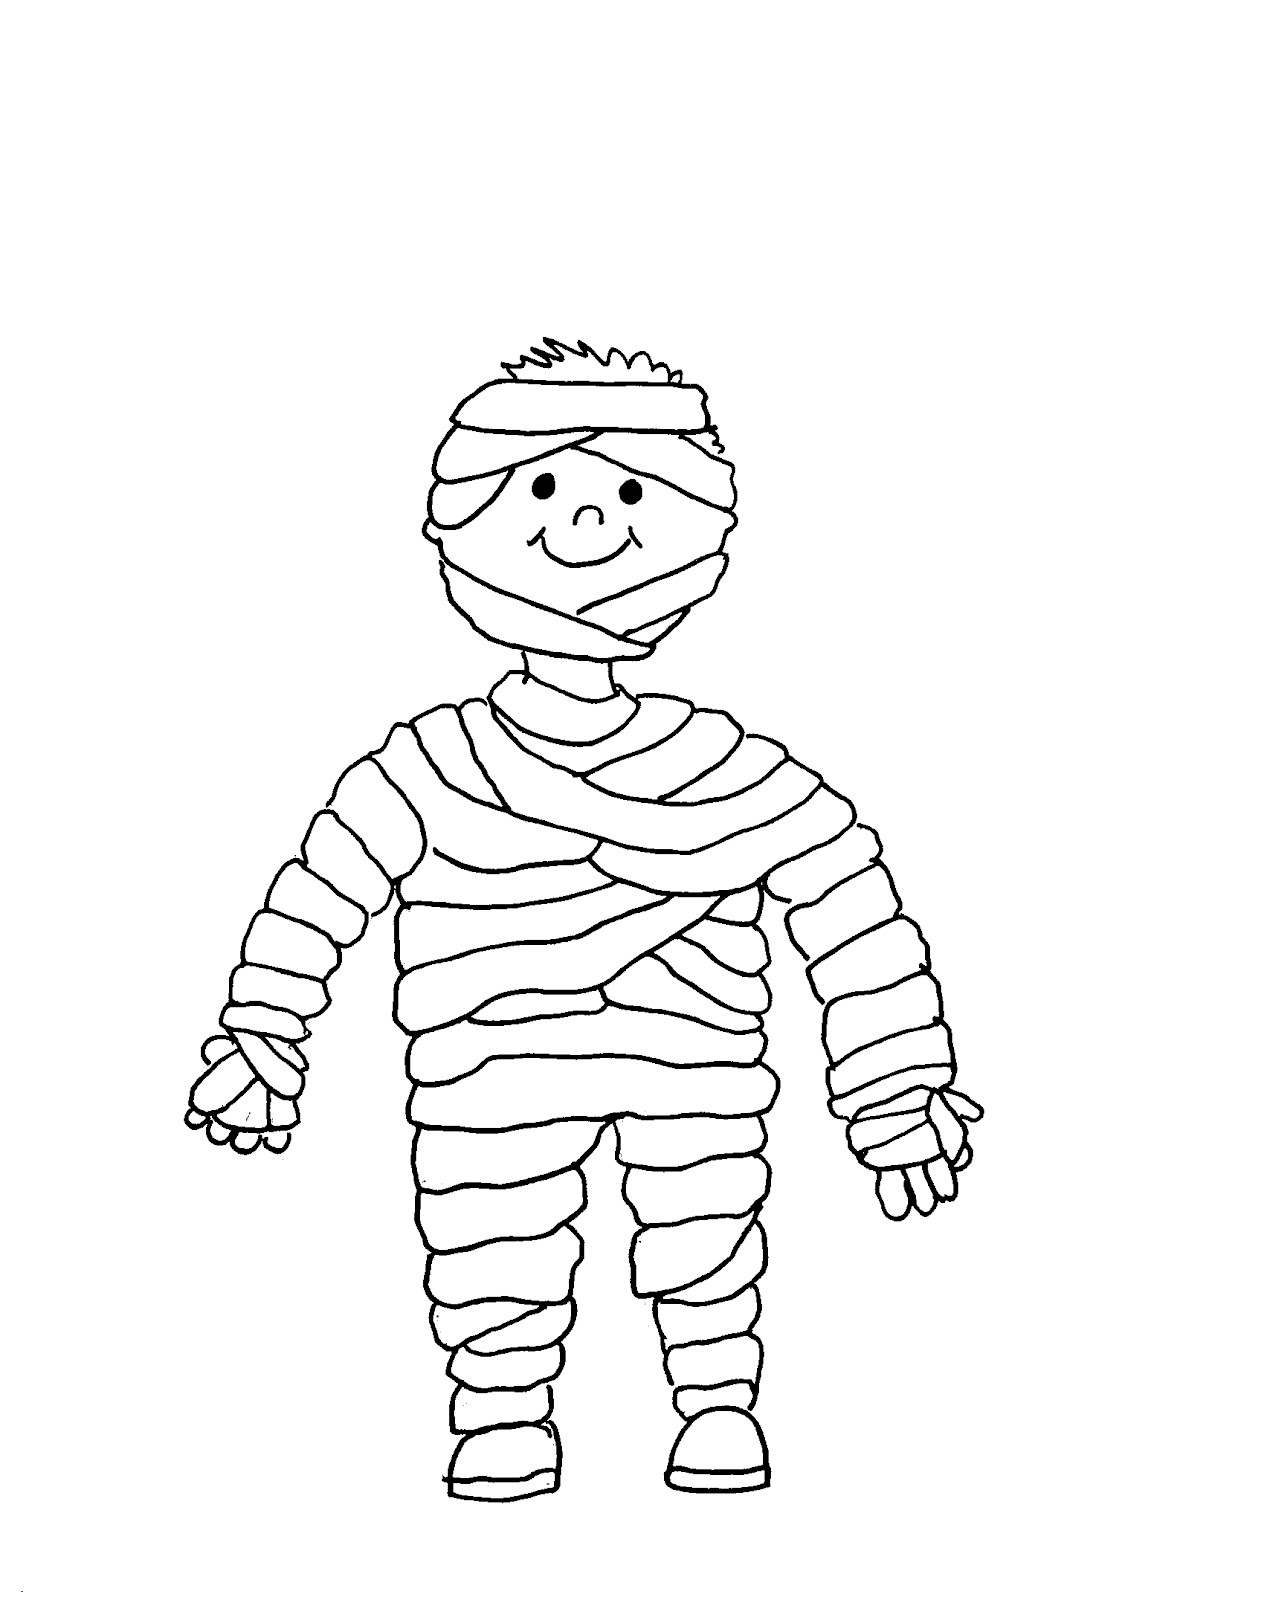 Cute Mummy Print Coloring Pages